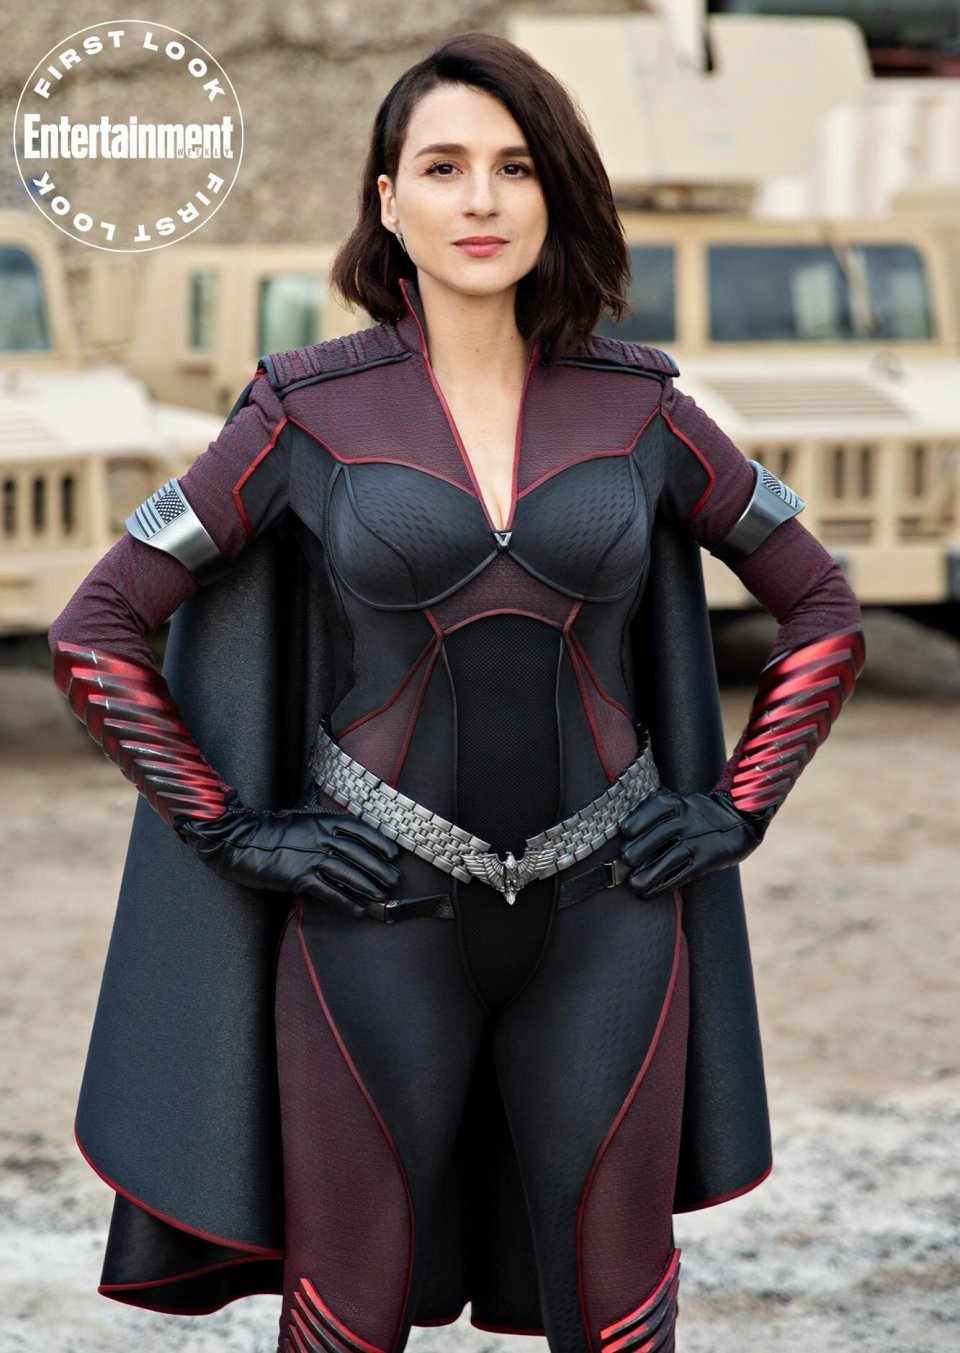 First Look at Aya Cash as Stormfront in THE BOYS Season 2 and New Details2.jpeg